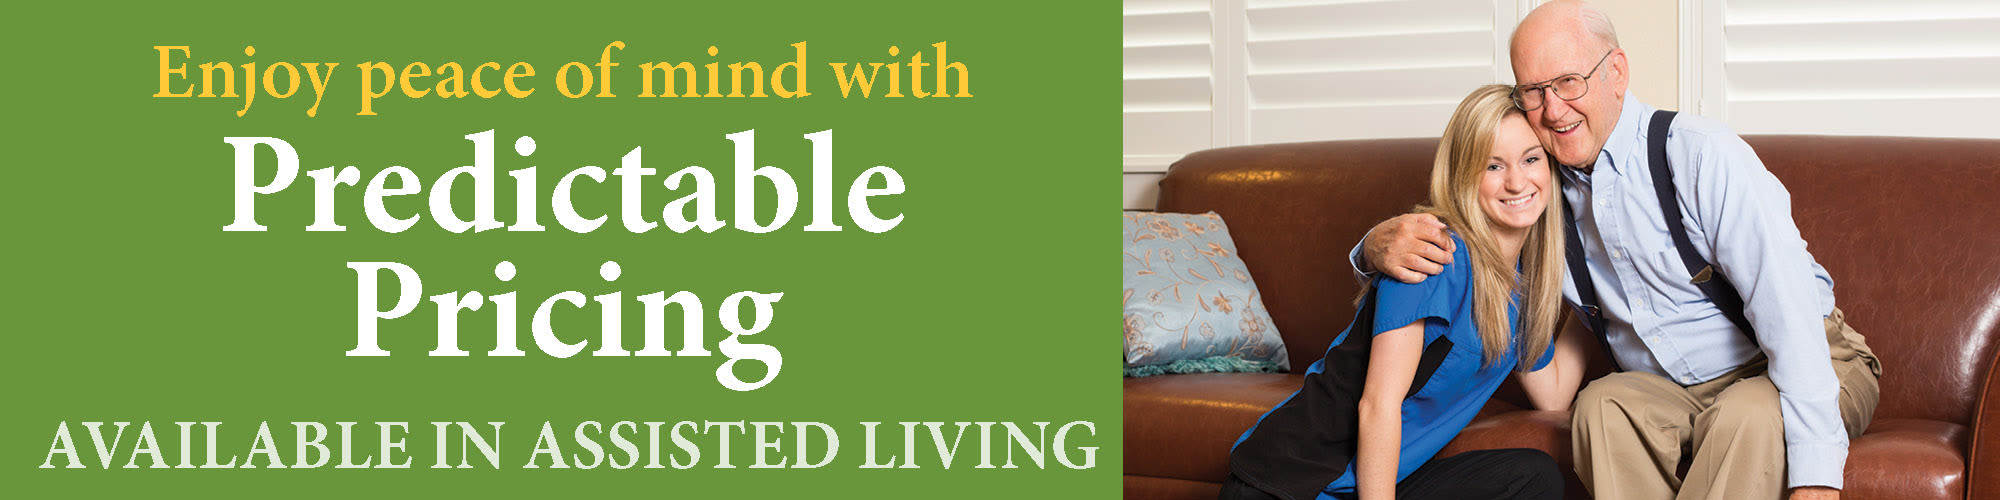 Enjoy peace of mind with predictable pricing